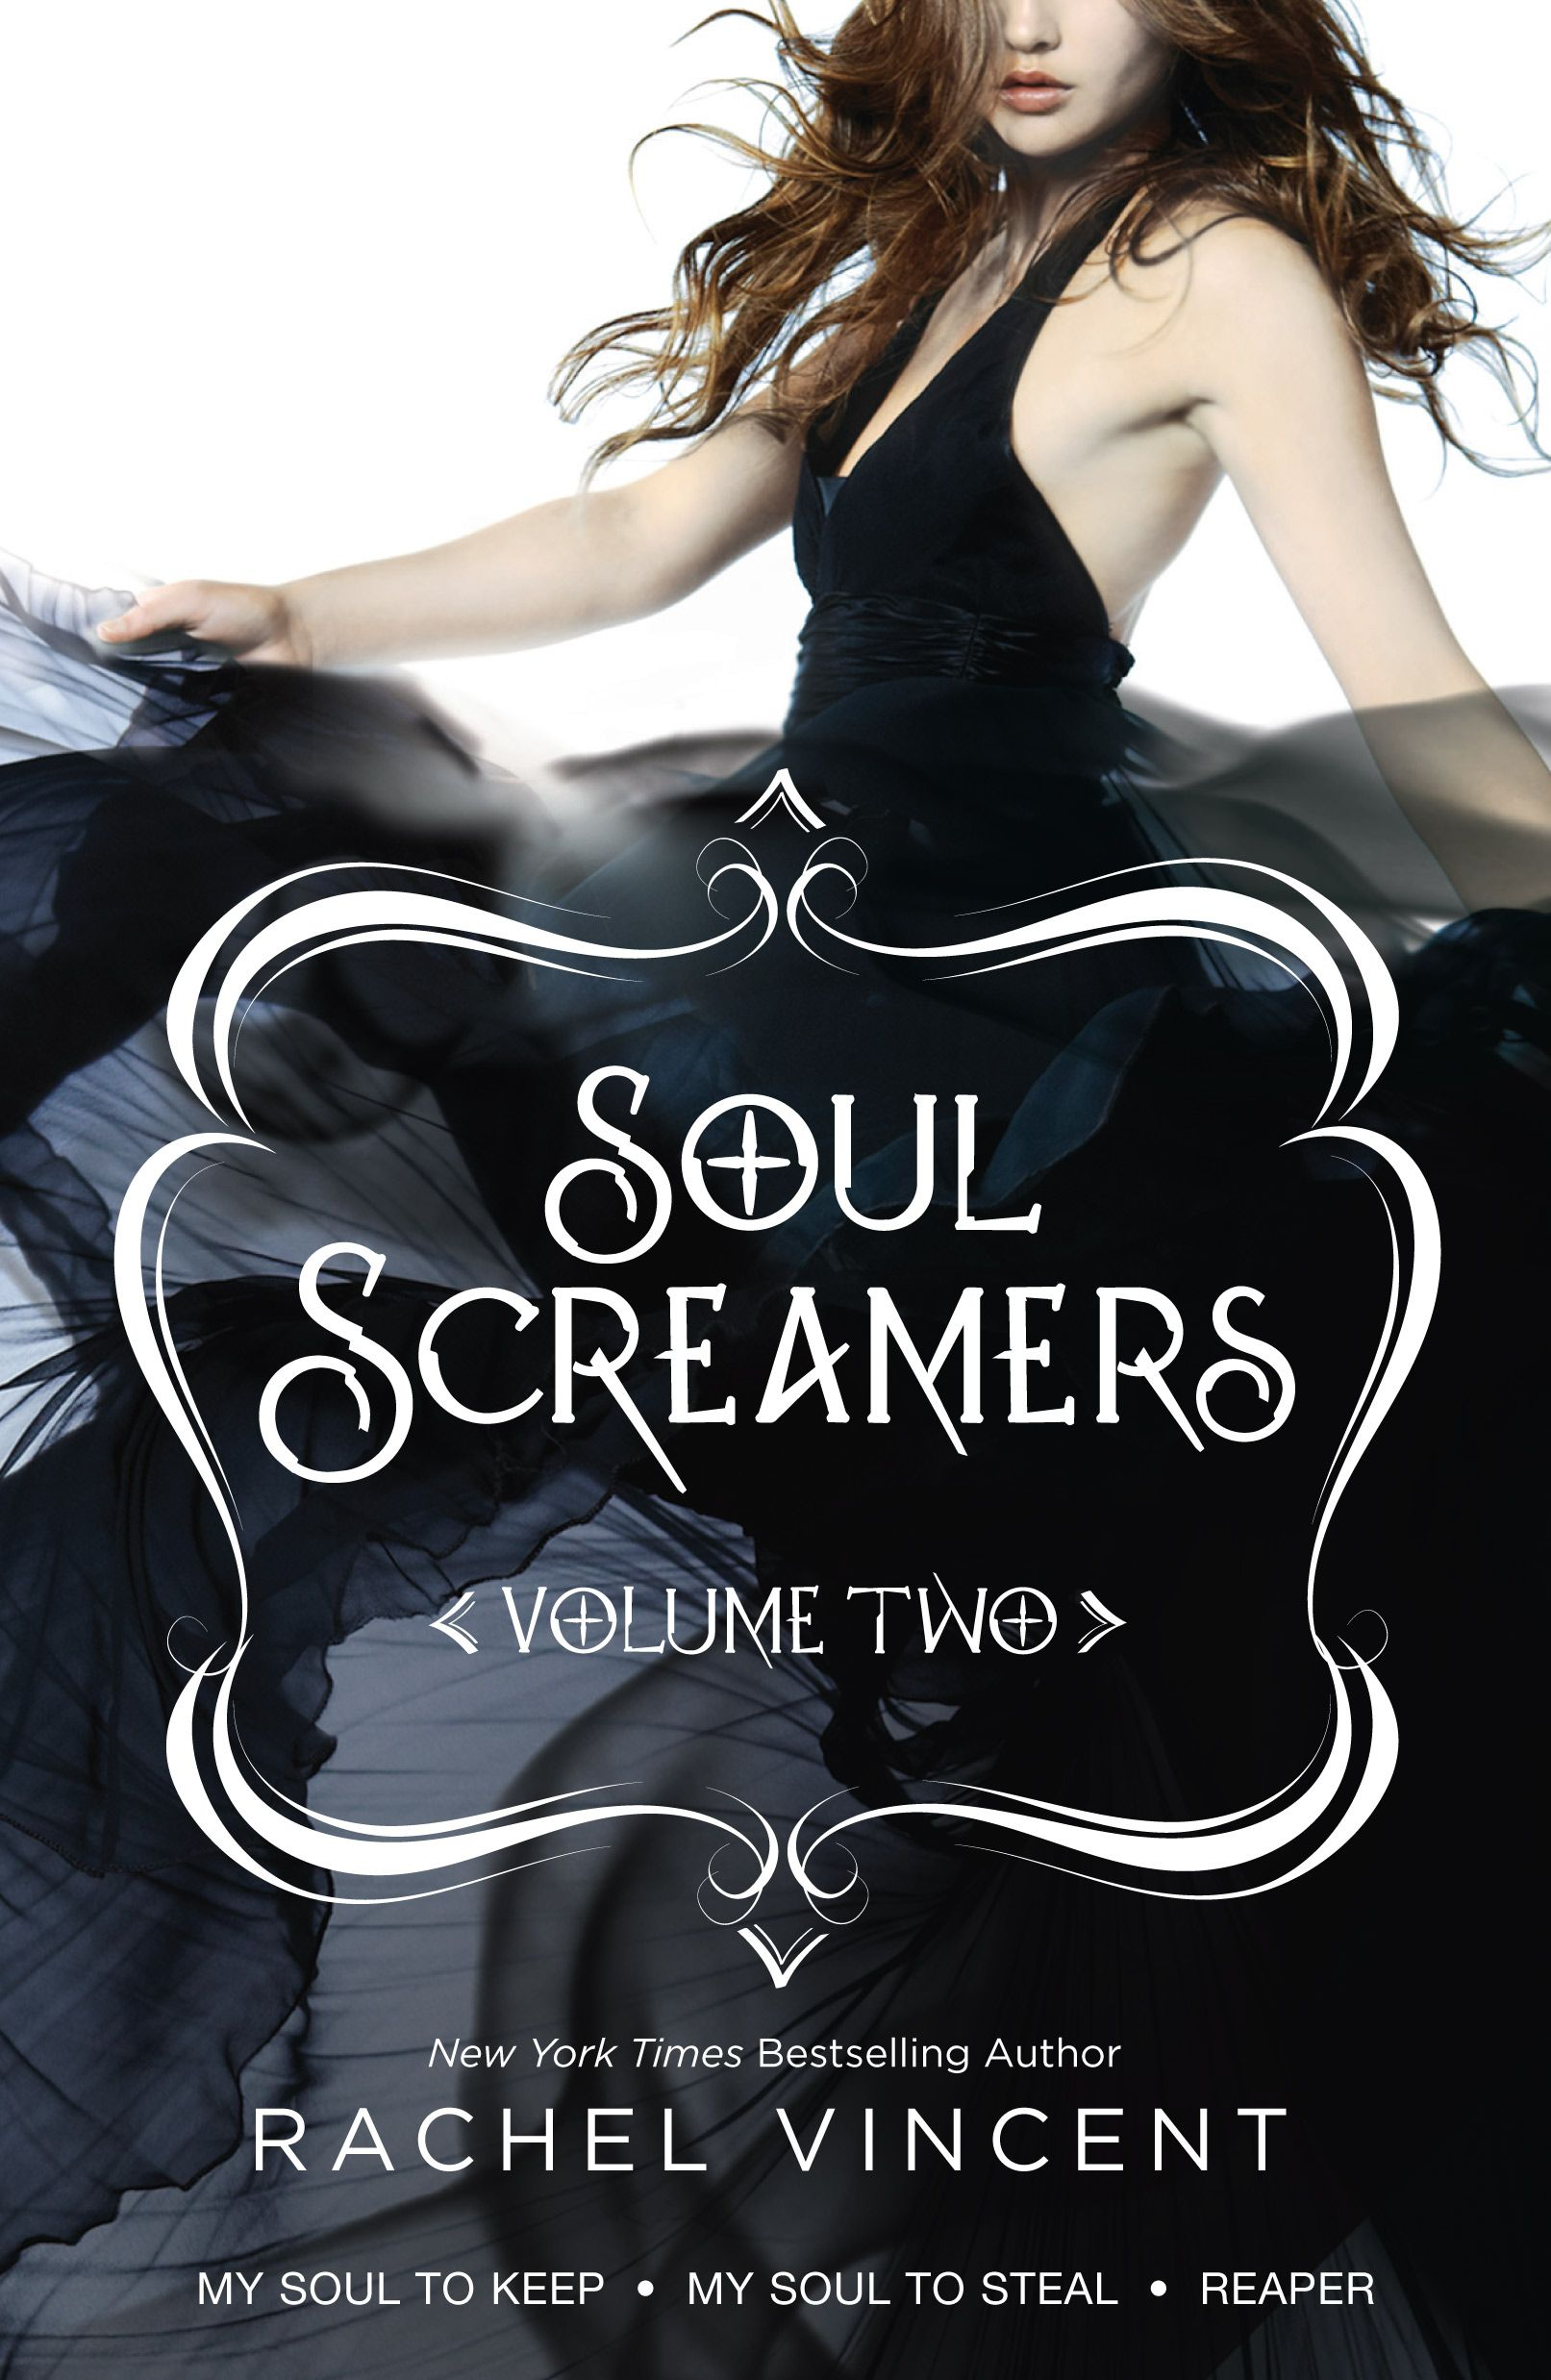 Soul Screamers Vol 2 By Rachel Vincent Free Ebooksbooks